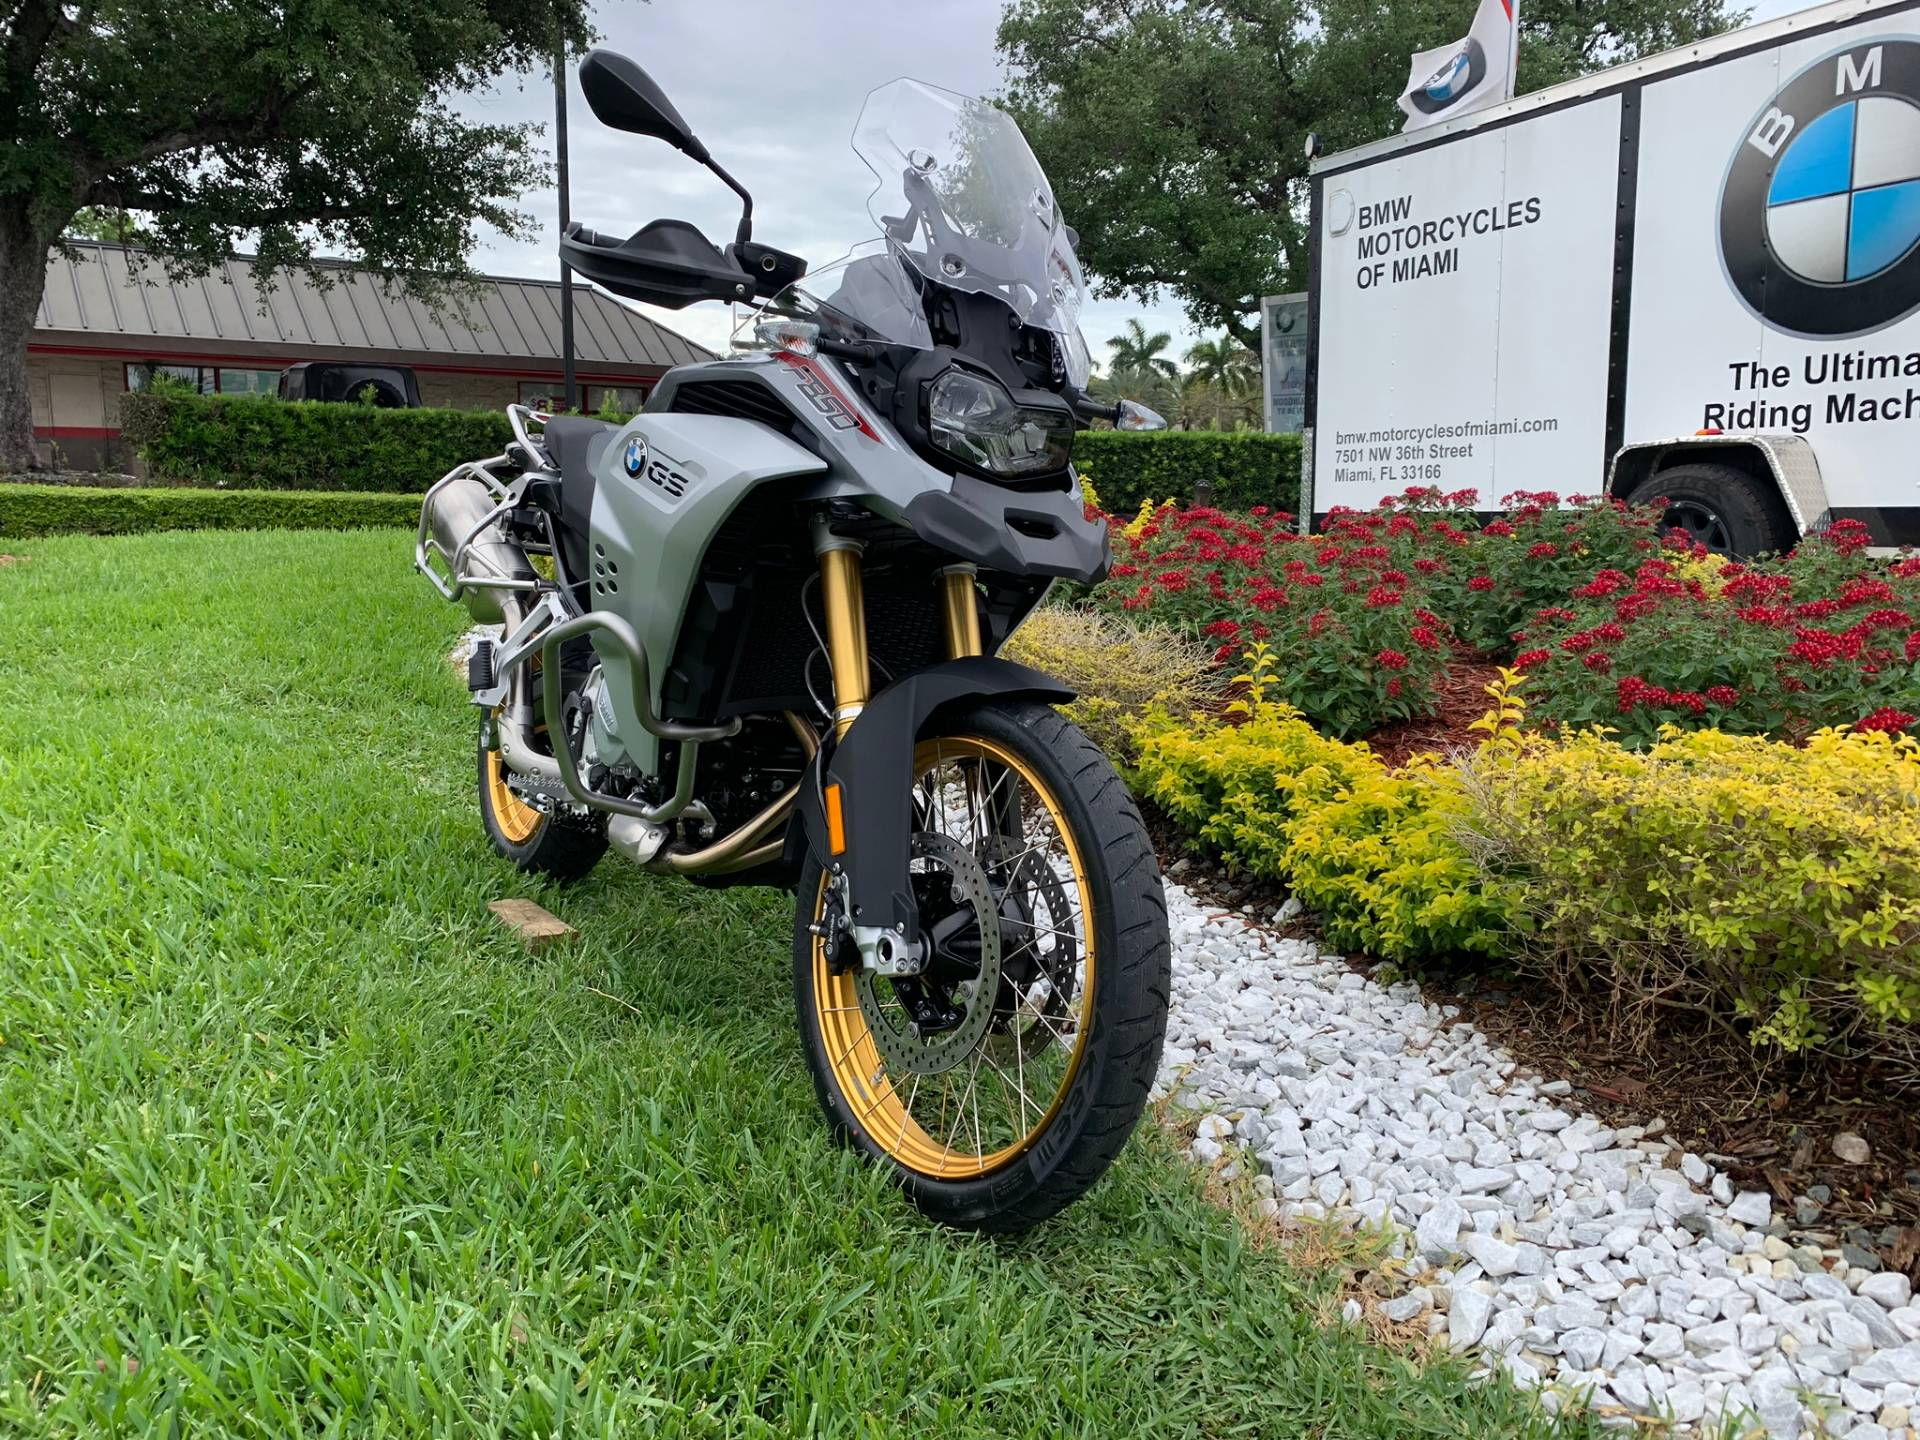 New 2019 BMW F 850 GSA for sale, BMW F 850GSA for sale, BMW Motorcycle F850GSA, new BMW 850 Adventure, Adventure. BMW Motorcycles of Miami, Motorcycles of Miami, Motorcycles Miami, New Motorcycles, Used Motorcycles, pre-owned. #BMWMotorcyclesOfMiami #MotorcyclesOfMiami #MotorcyclesMiami - Photo 31